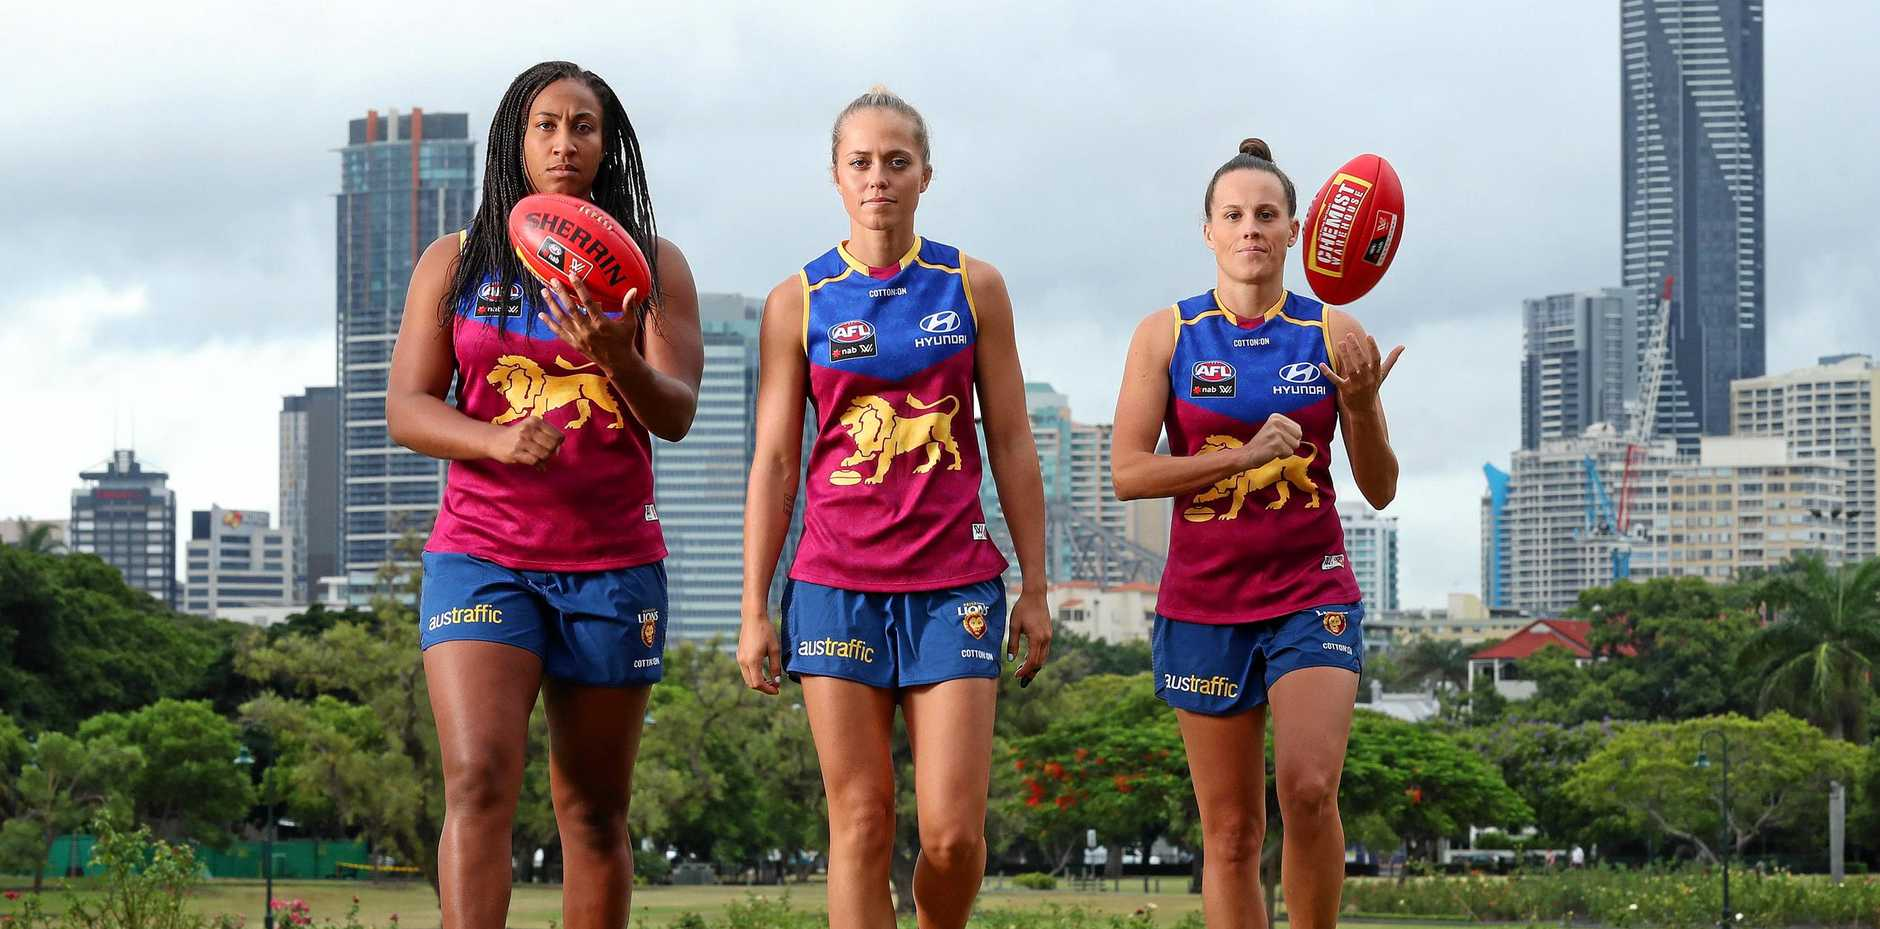 Sabrina Frederick, Kaitlyn Ashmore and Emma Zielke have a point to prove for Brisbane in Saturday's AFLW Grand Final against the Western Bulldogs in Melbourne.